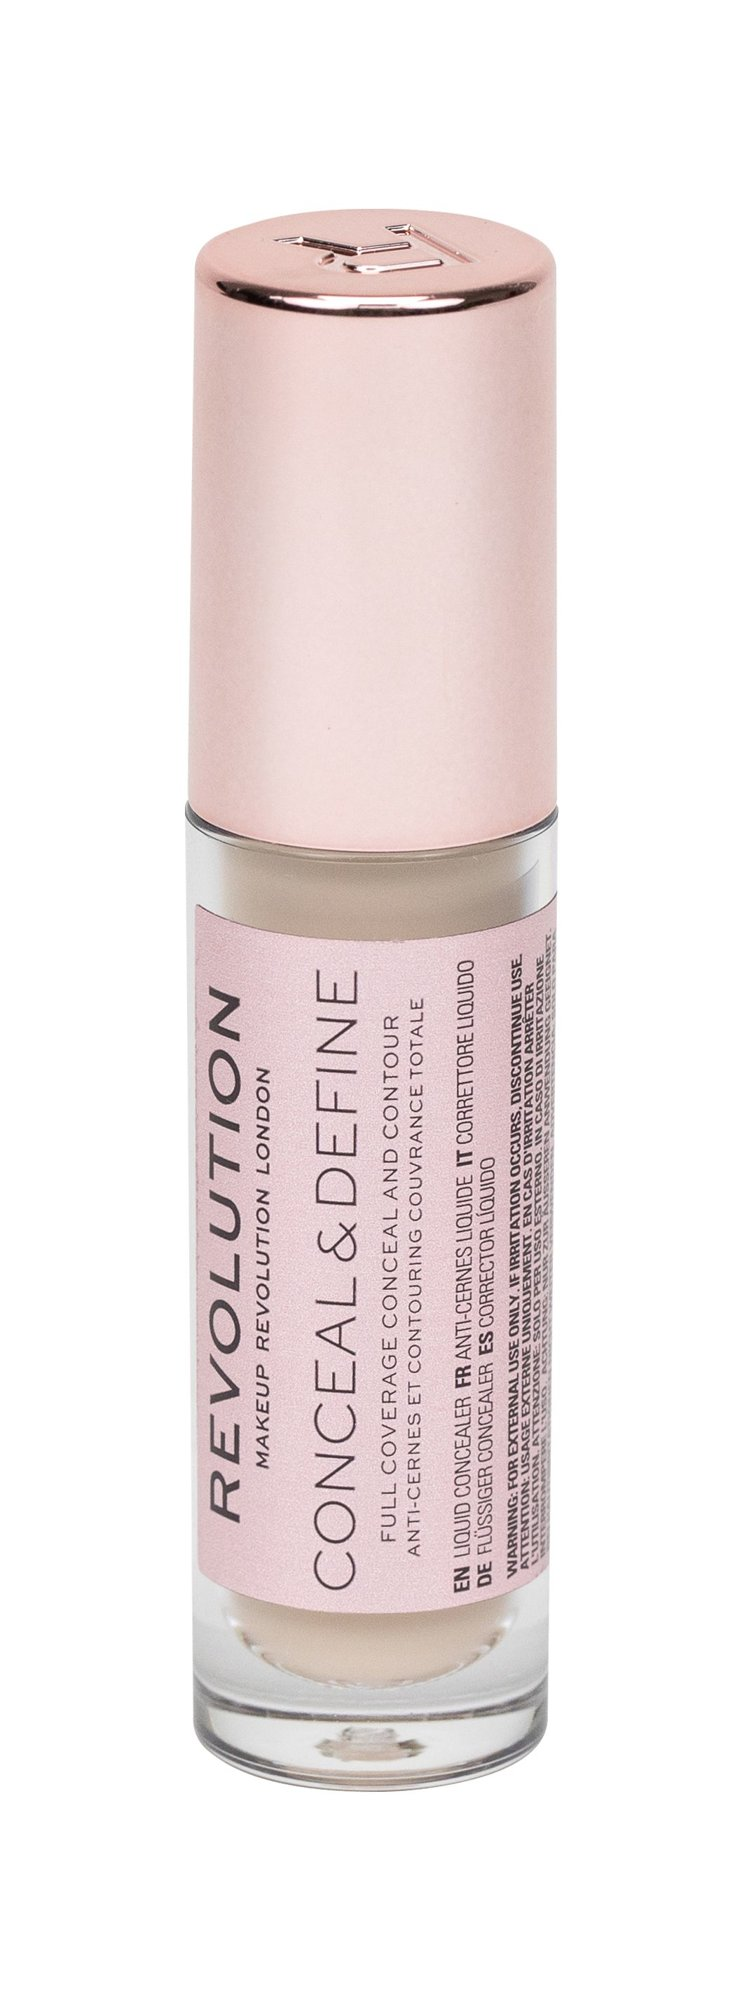 Makeup Revolution London Conceal & Define  Korektor, W, 4 g